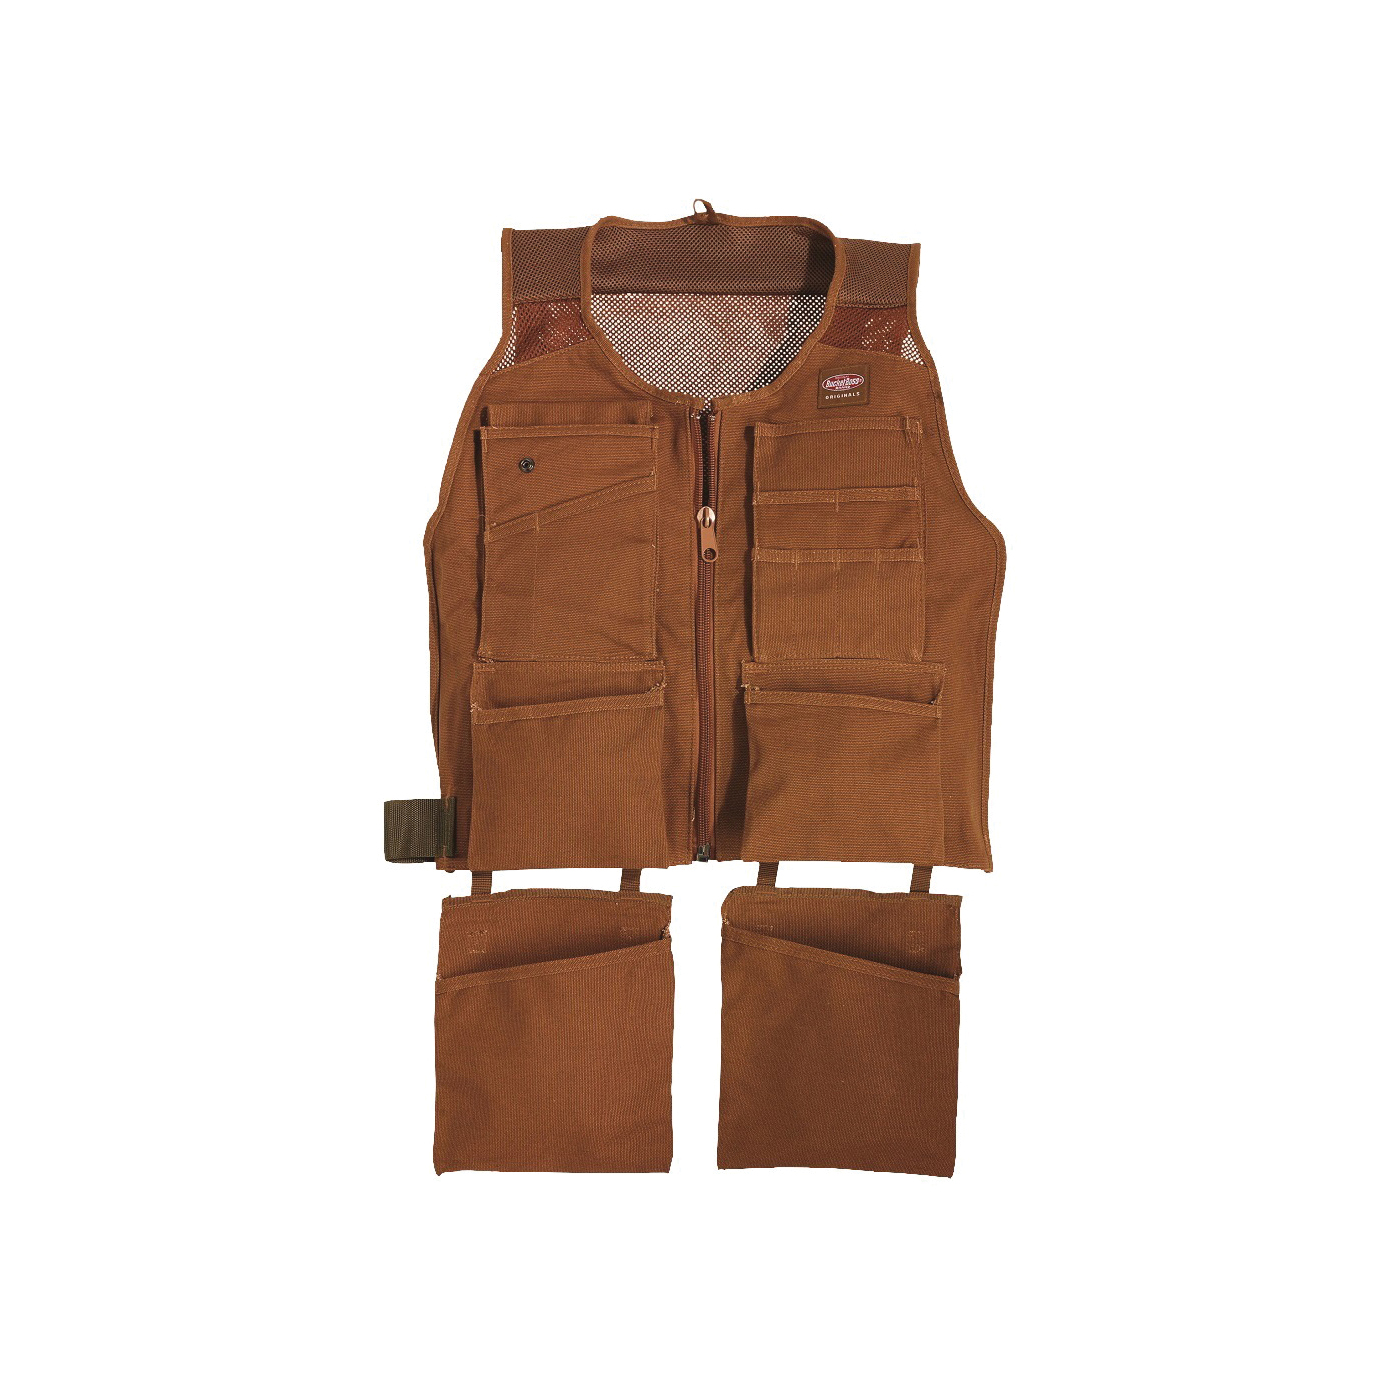 Picture of Bucket Boss 80400 SuperVest, S/M Waist, Canvas, Brown, 14 -Pocket